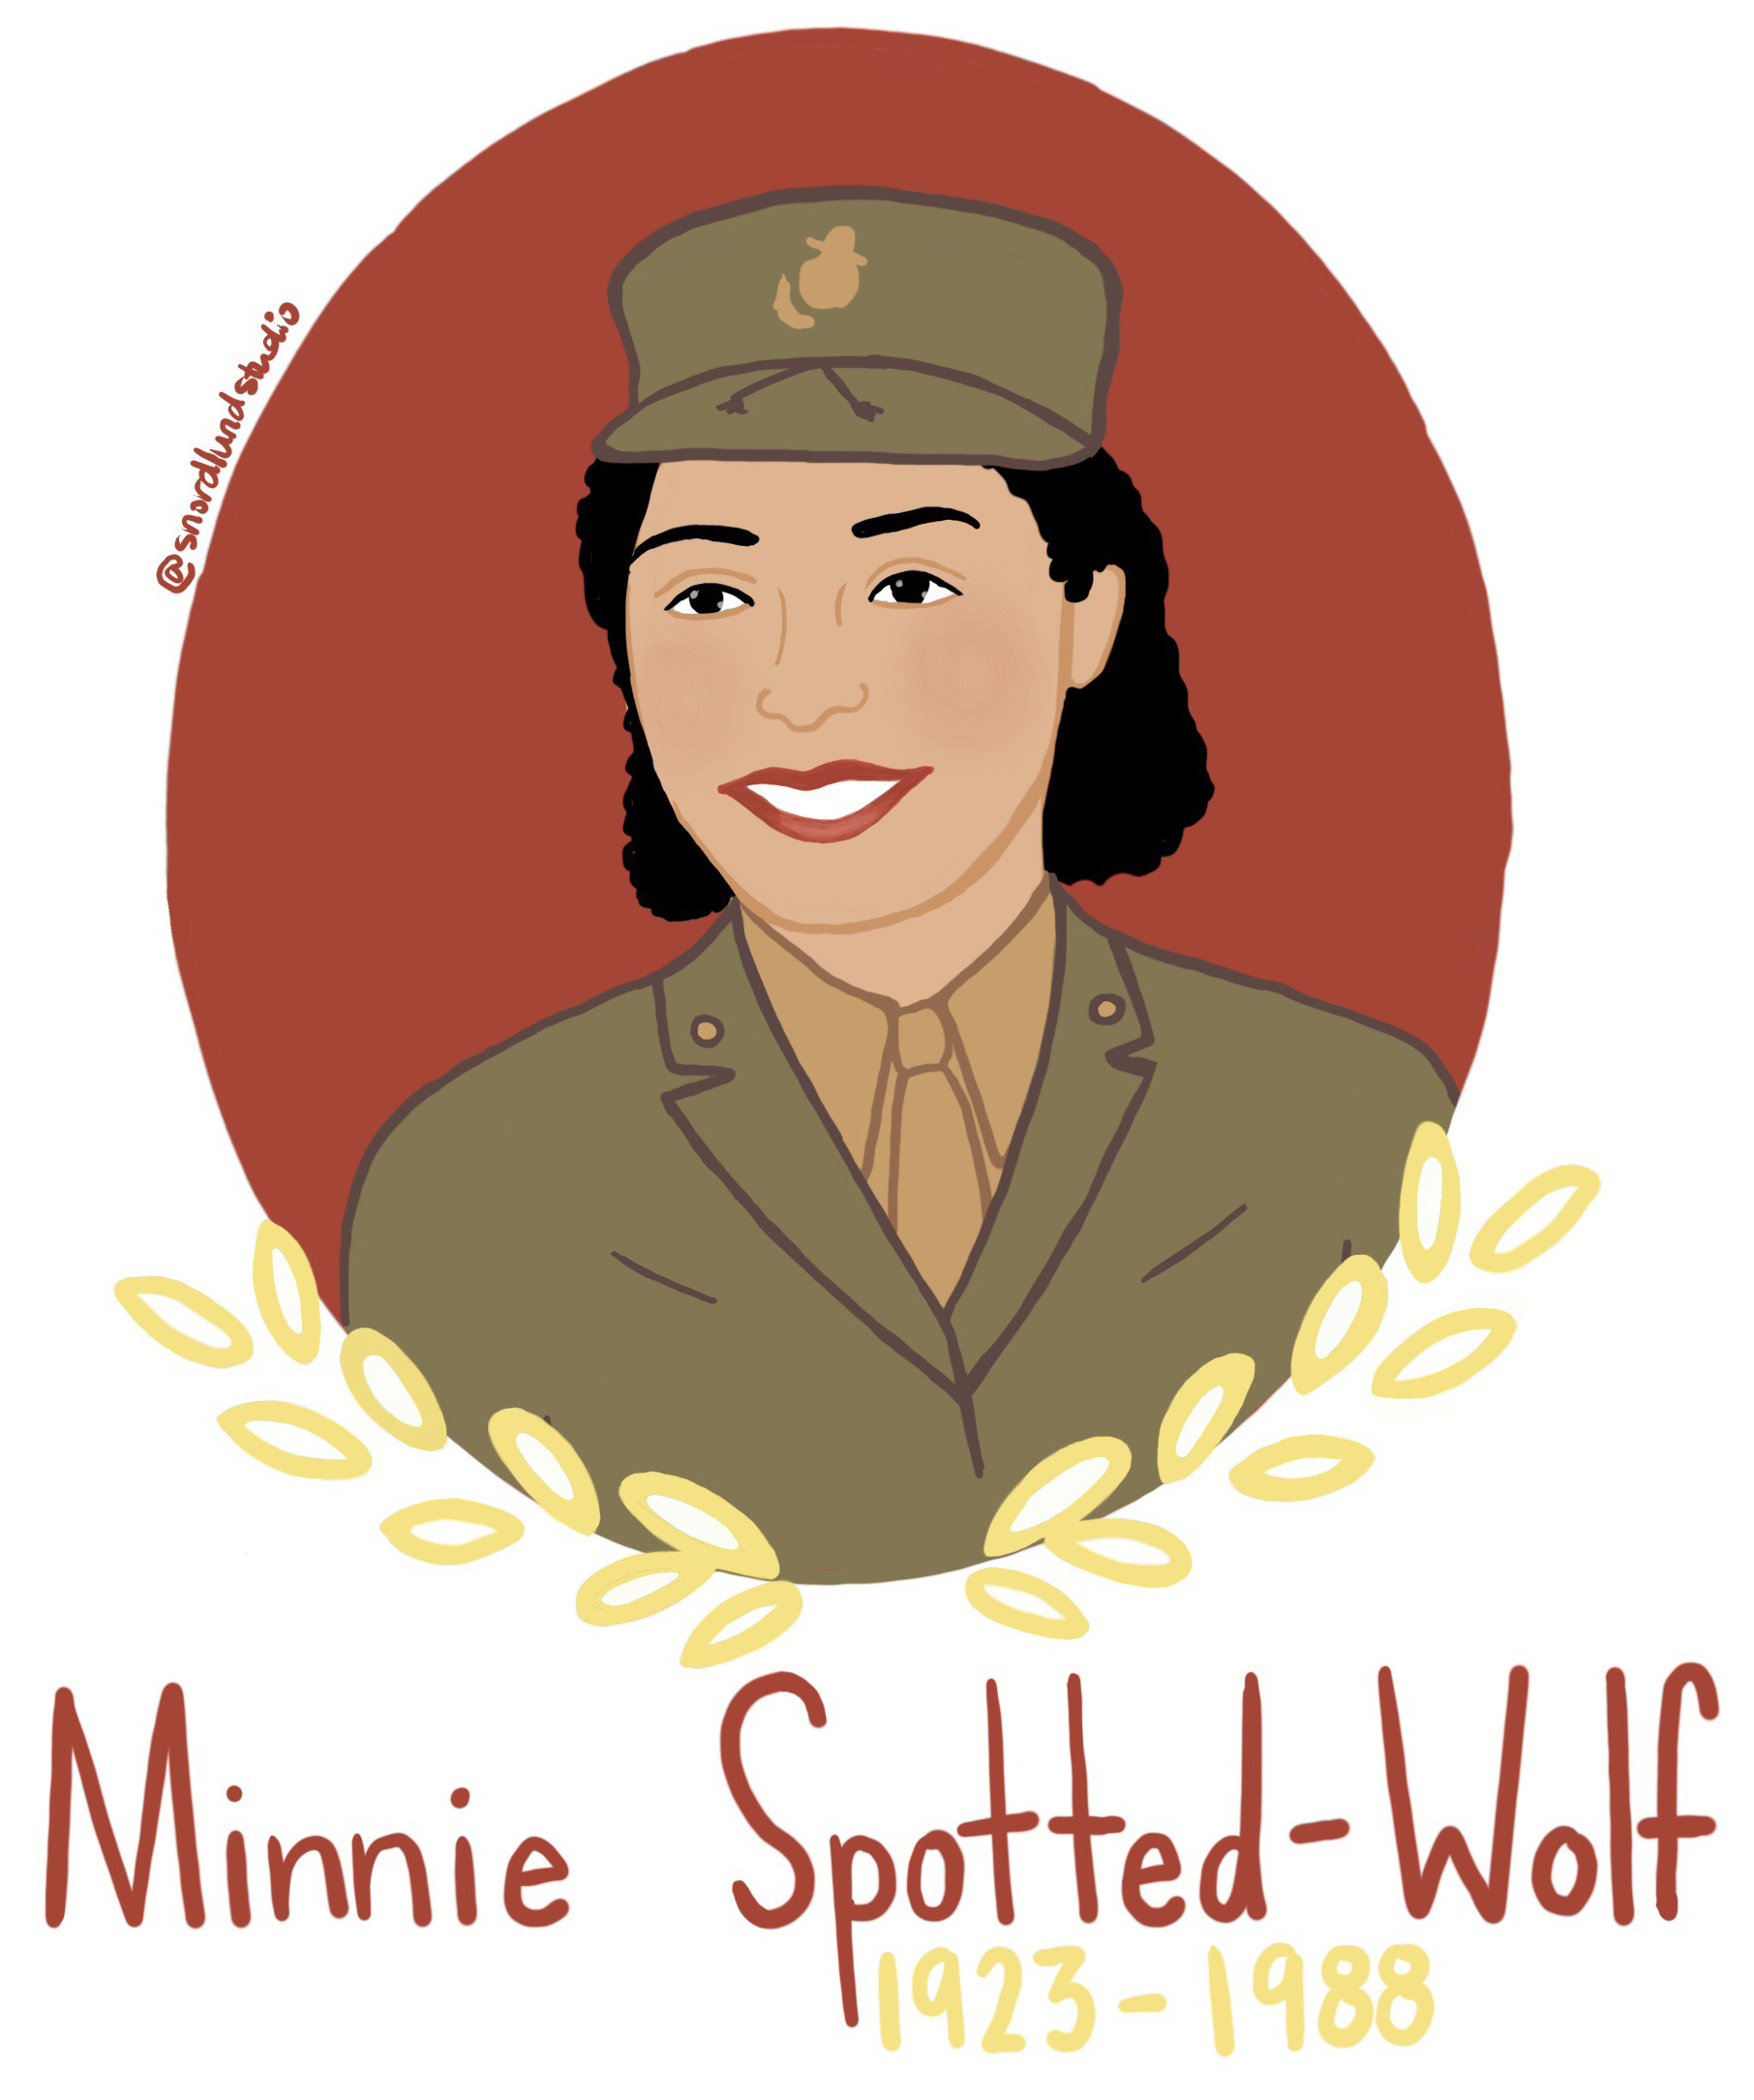 51. Minnie Spotted-Wolf - Minnie Spotted-Wolf (1923-1988) was the first Native American woman to enlist in the US Marine Corps. After her military service, she studied elementary education and taught for 29 years.